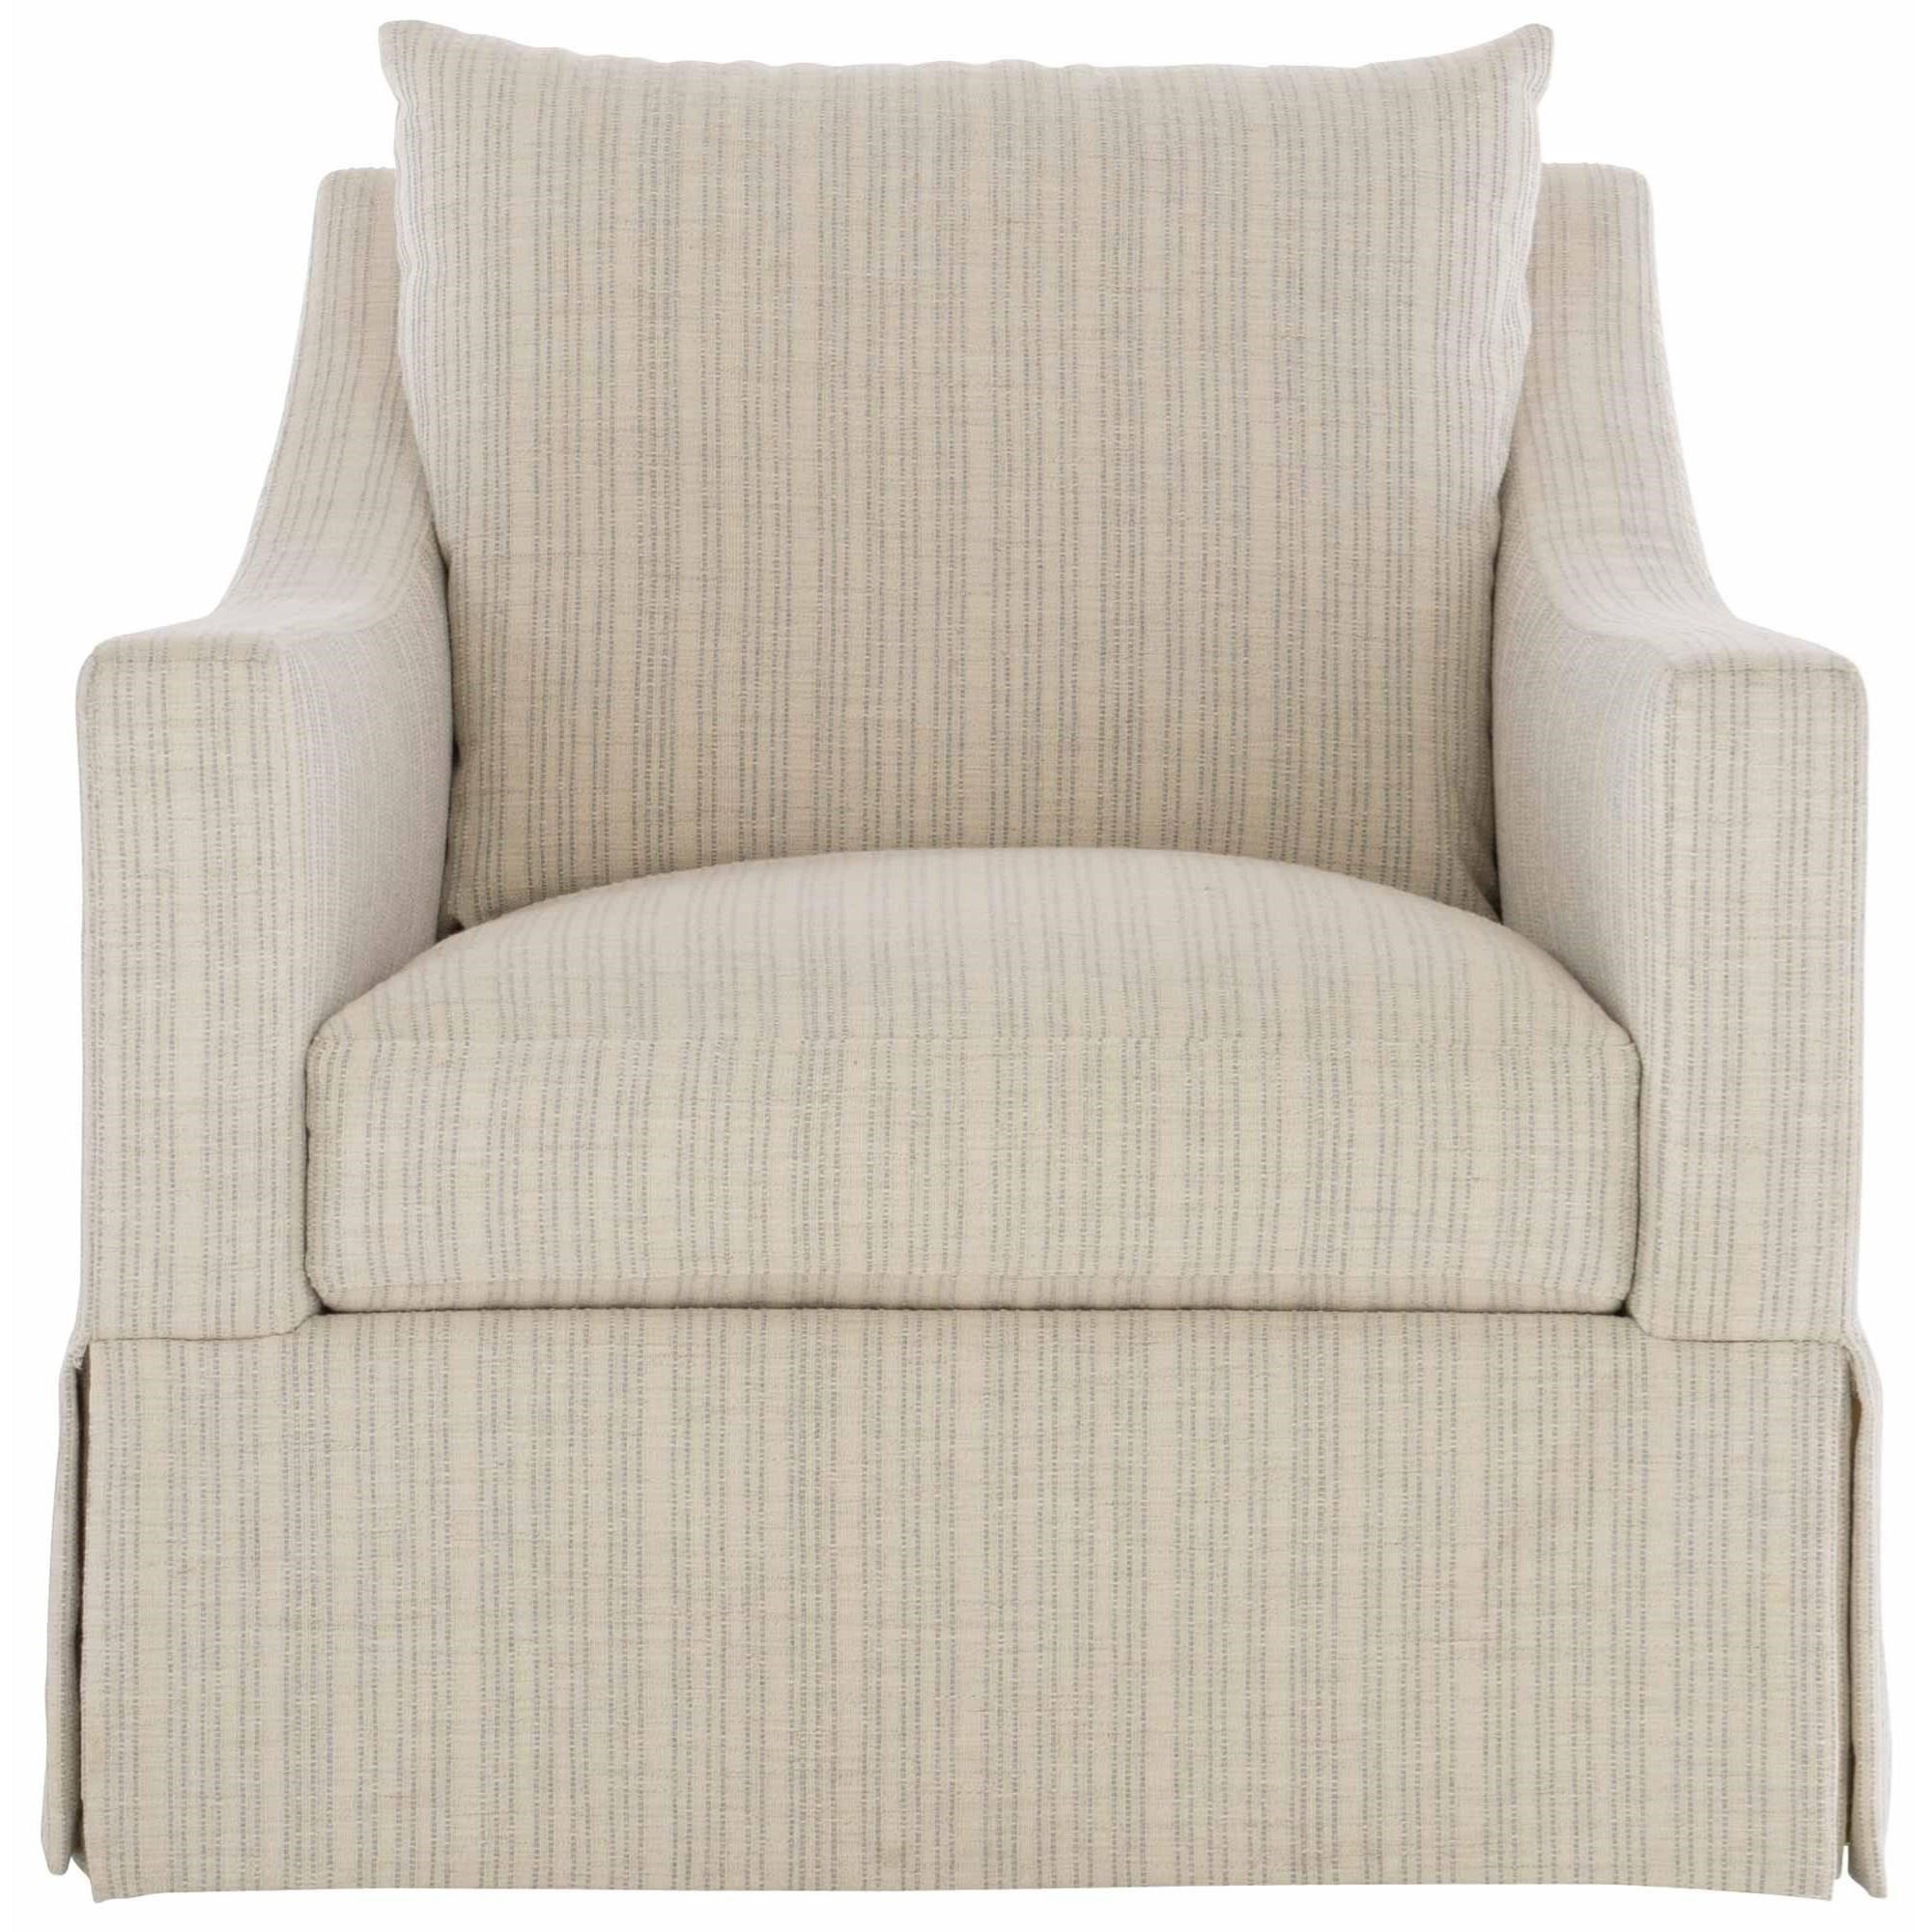 Grace Upholstered Swivel Chair at Williams & Kay